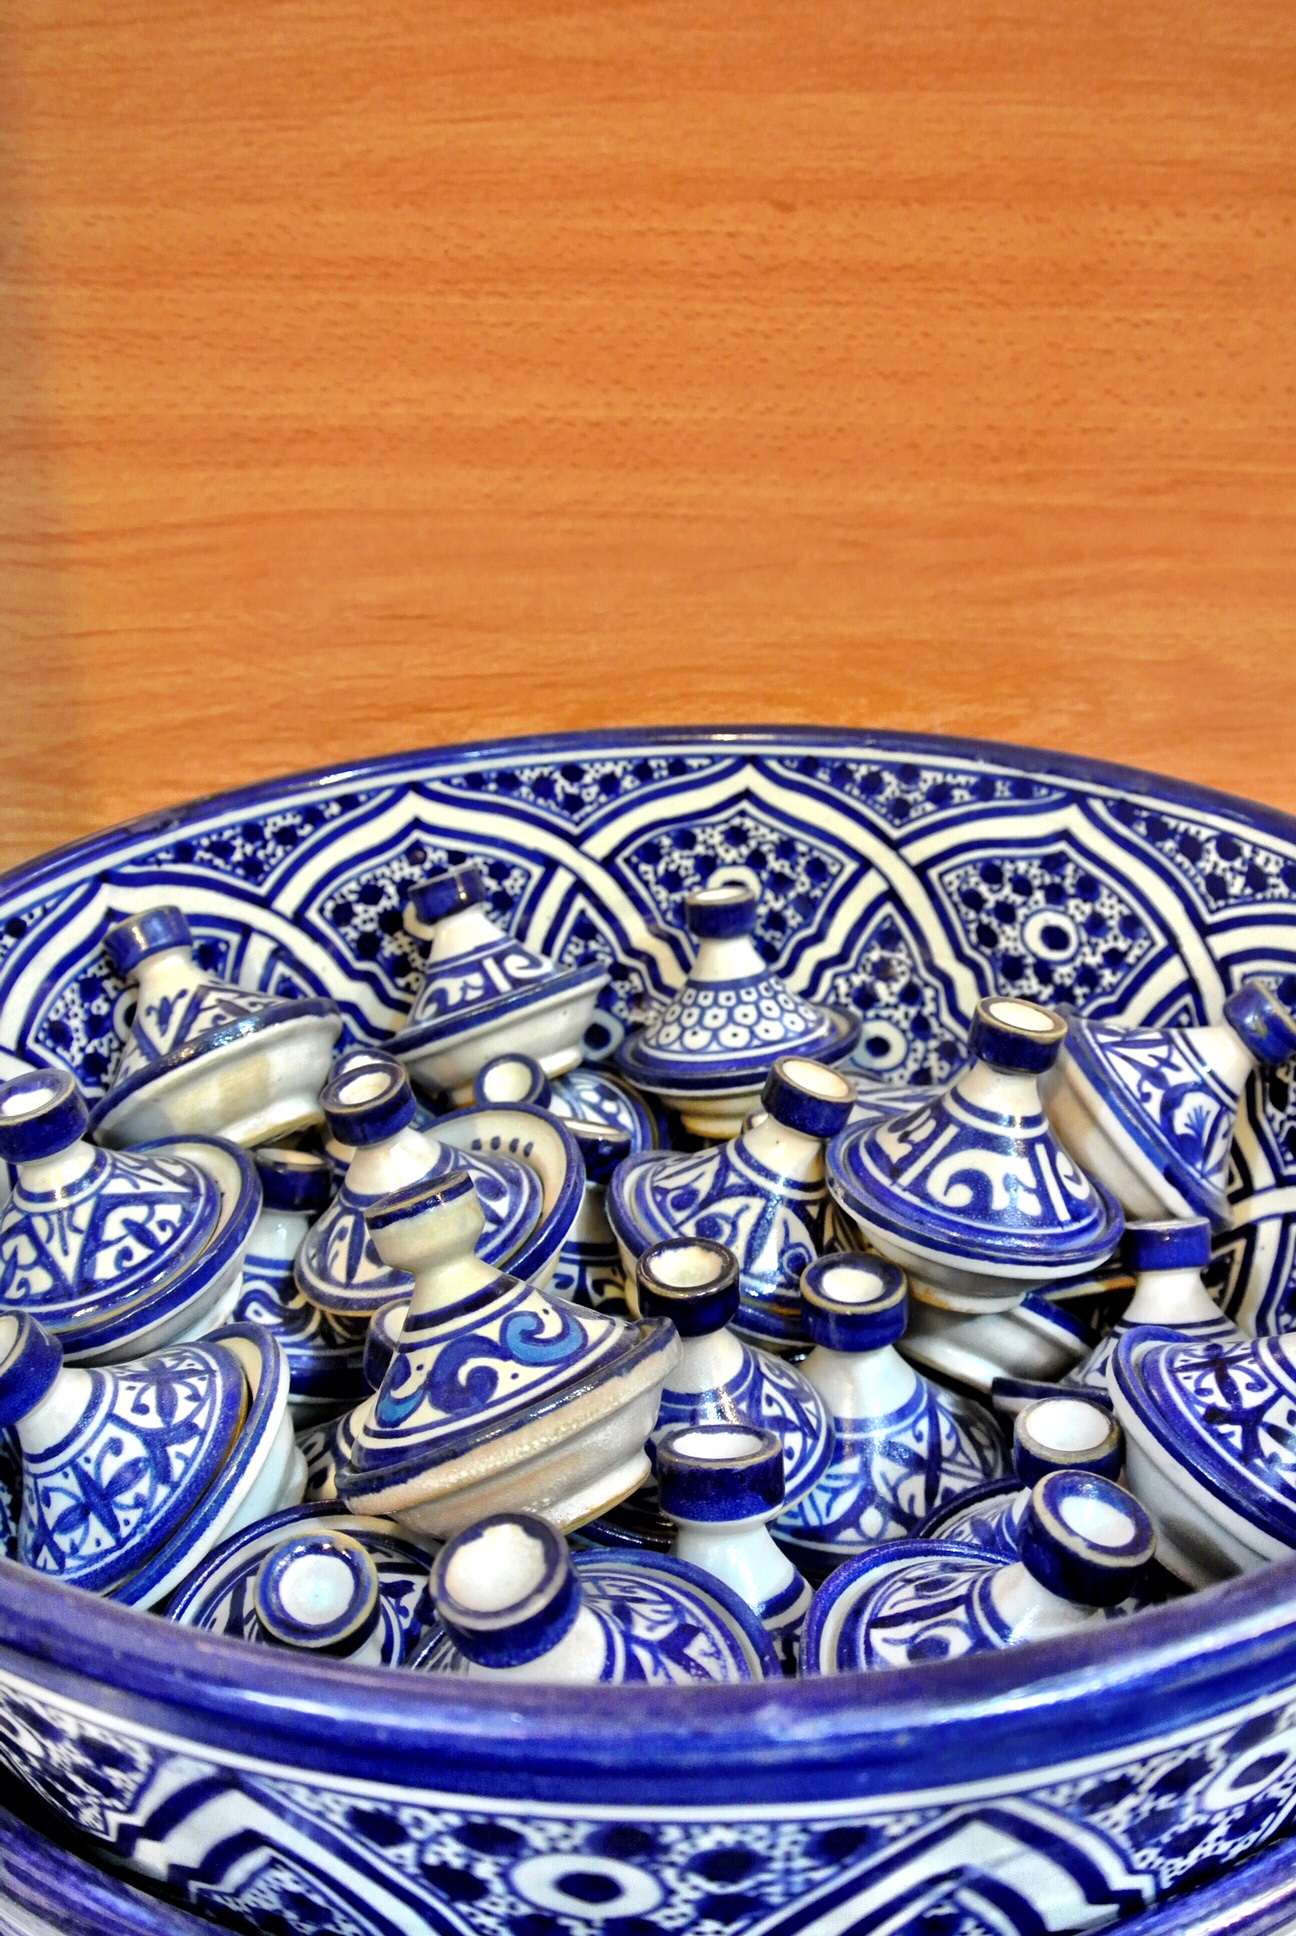 Fès is known for its delightful blue and white pottery